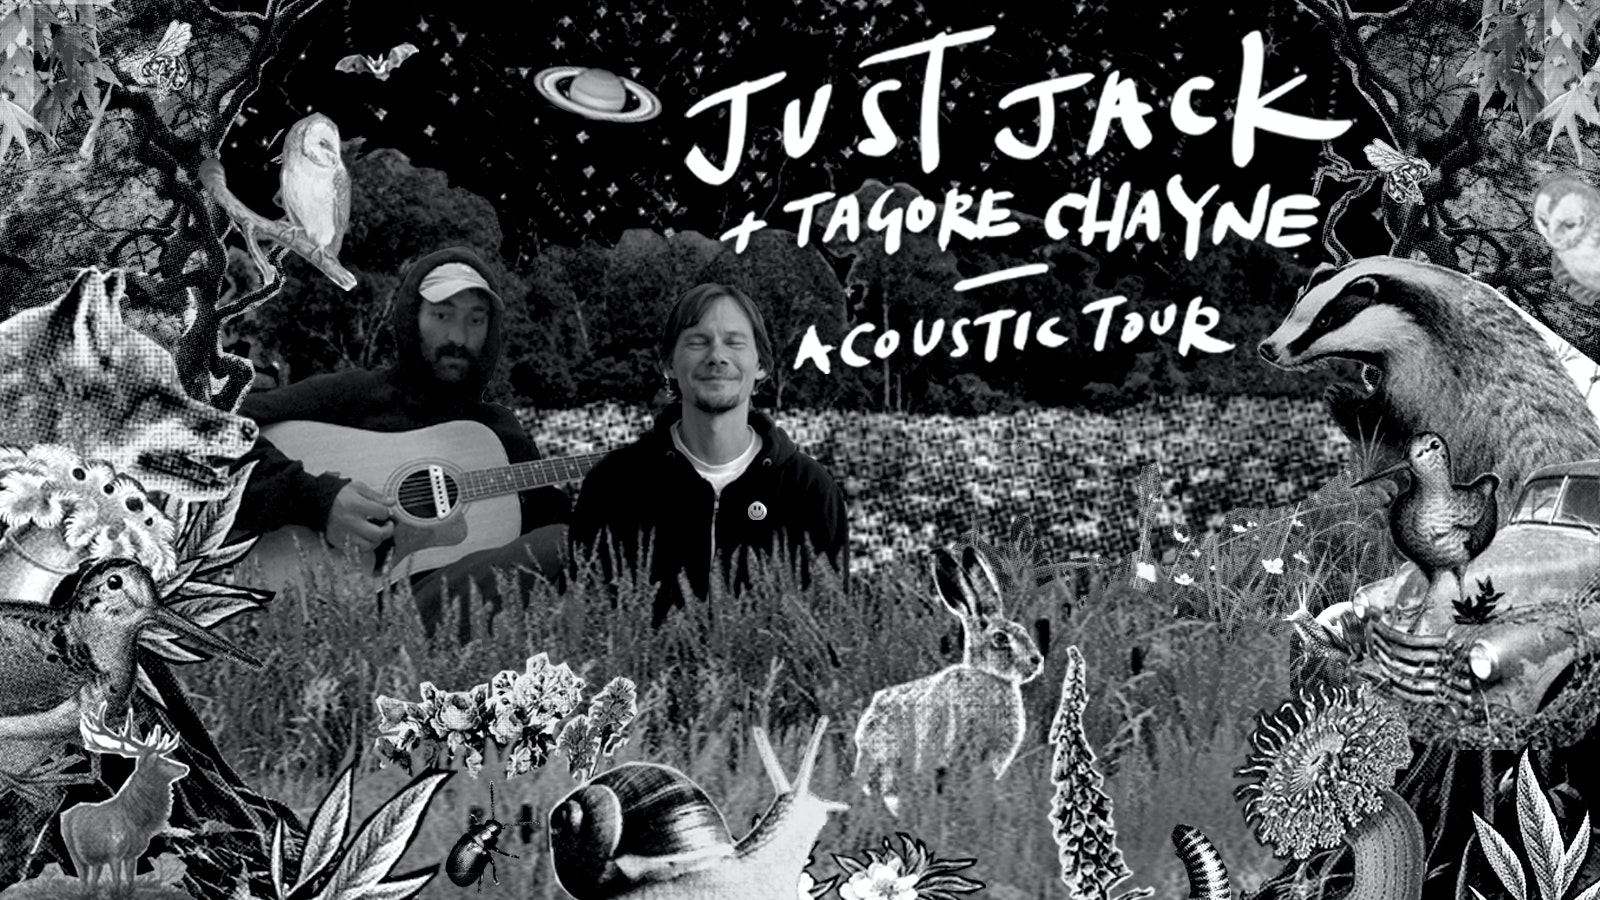 Just Jack + Tagore Chayne (Acoustic)